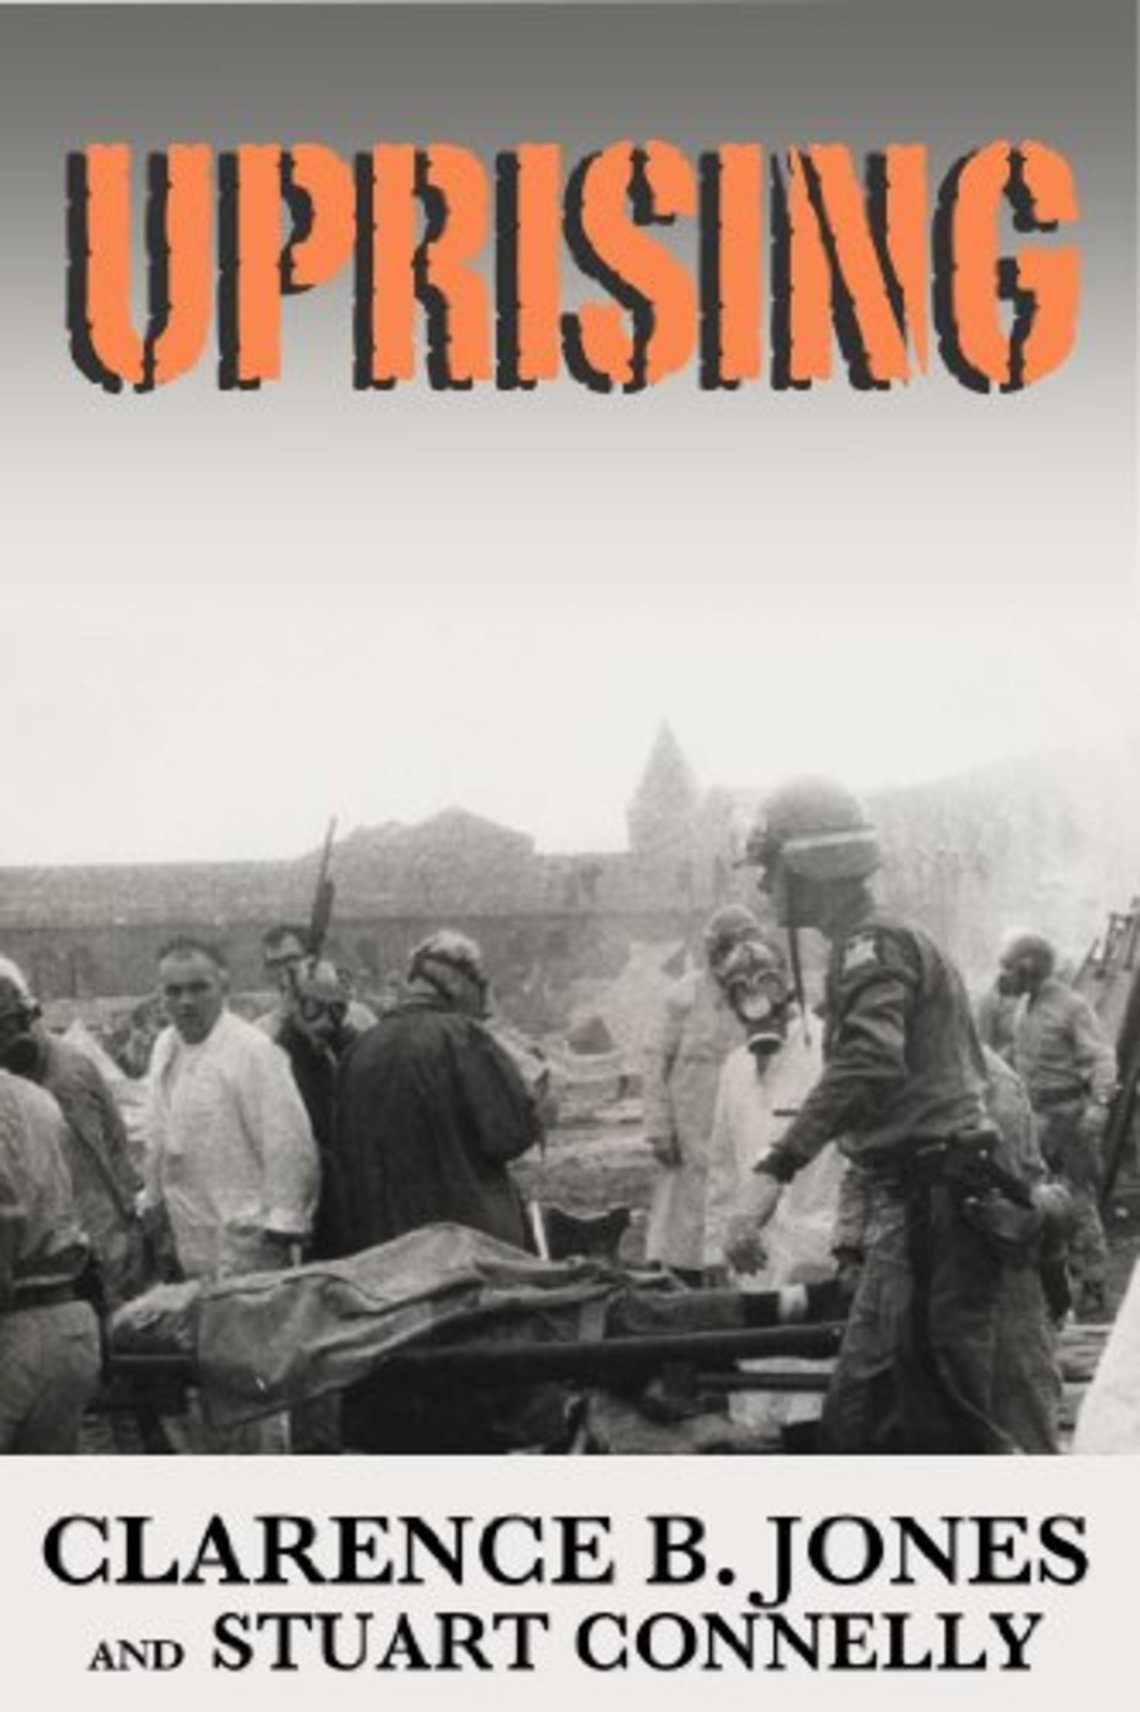 <b>Uprising: Understanding Attica, Revolution and the Incarceration State</b>, Clarence B. Jones and Stuart Connelly, Kindle Books 2011.